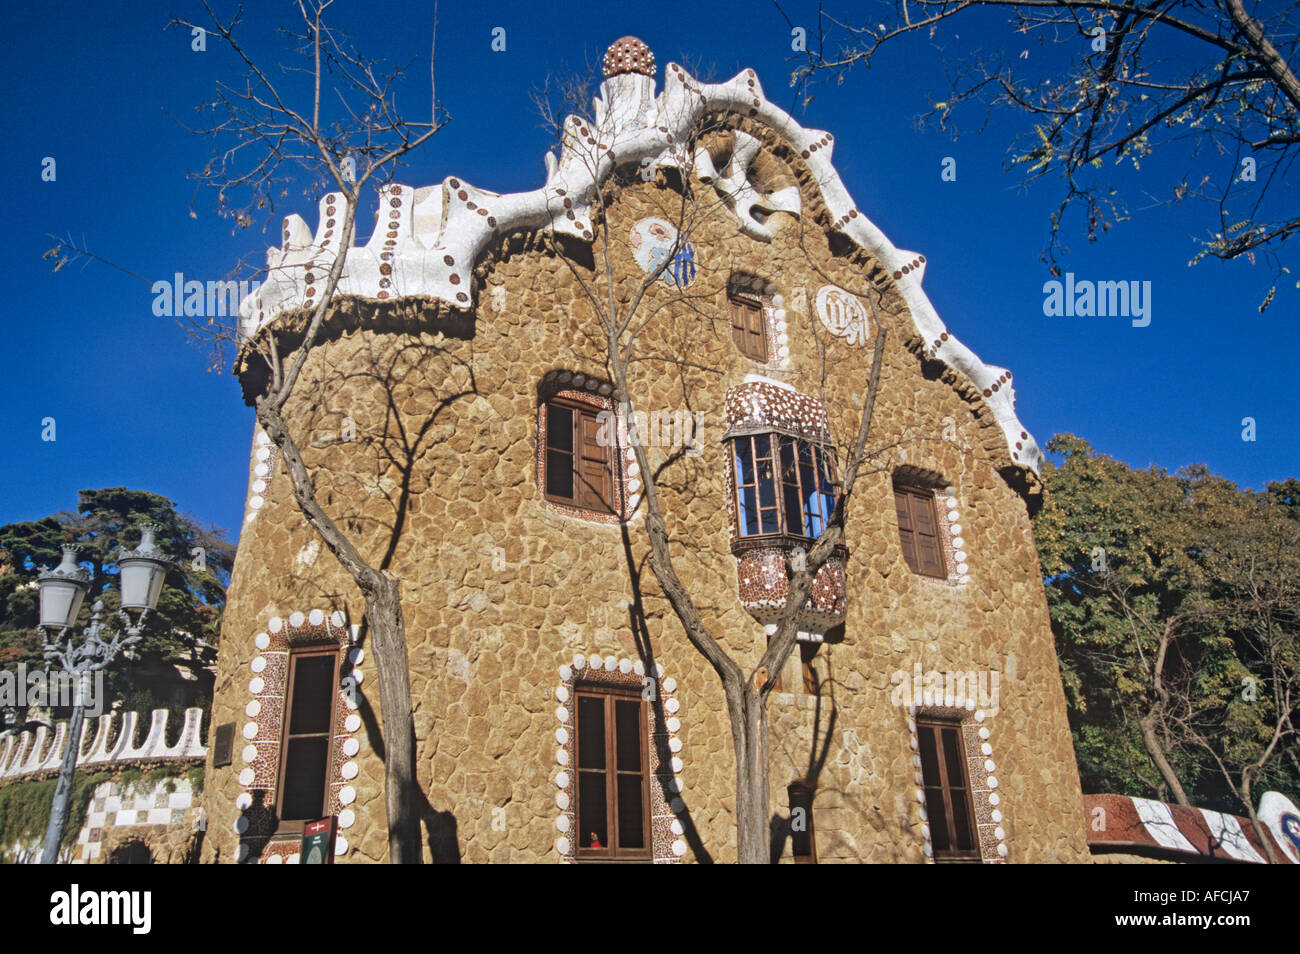 In Güell Park created by Antoni Gaudí the entry lodge is the Interpretation Centre - Stock Image